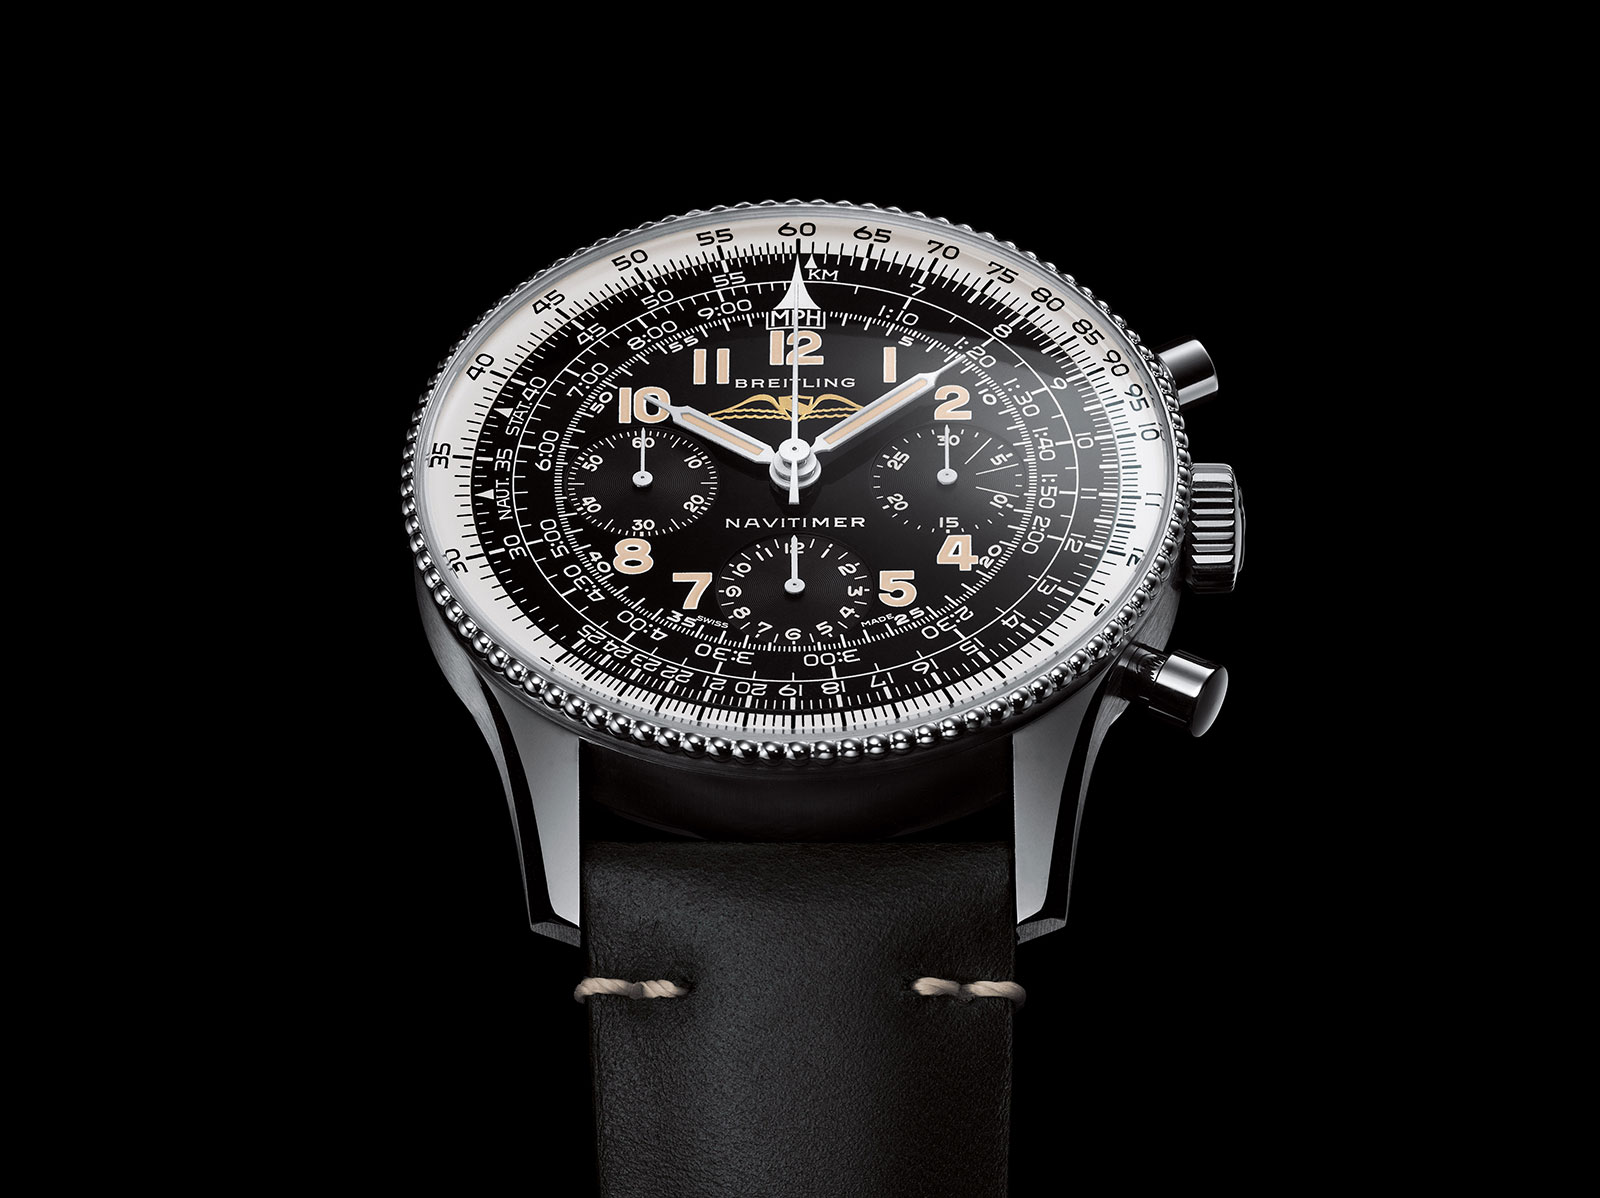 Breitling Navitimer Ref. 806 1959 Re-Edition 3